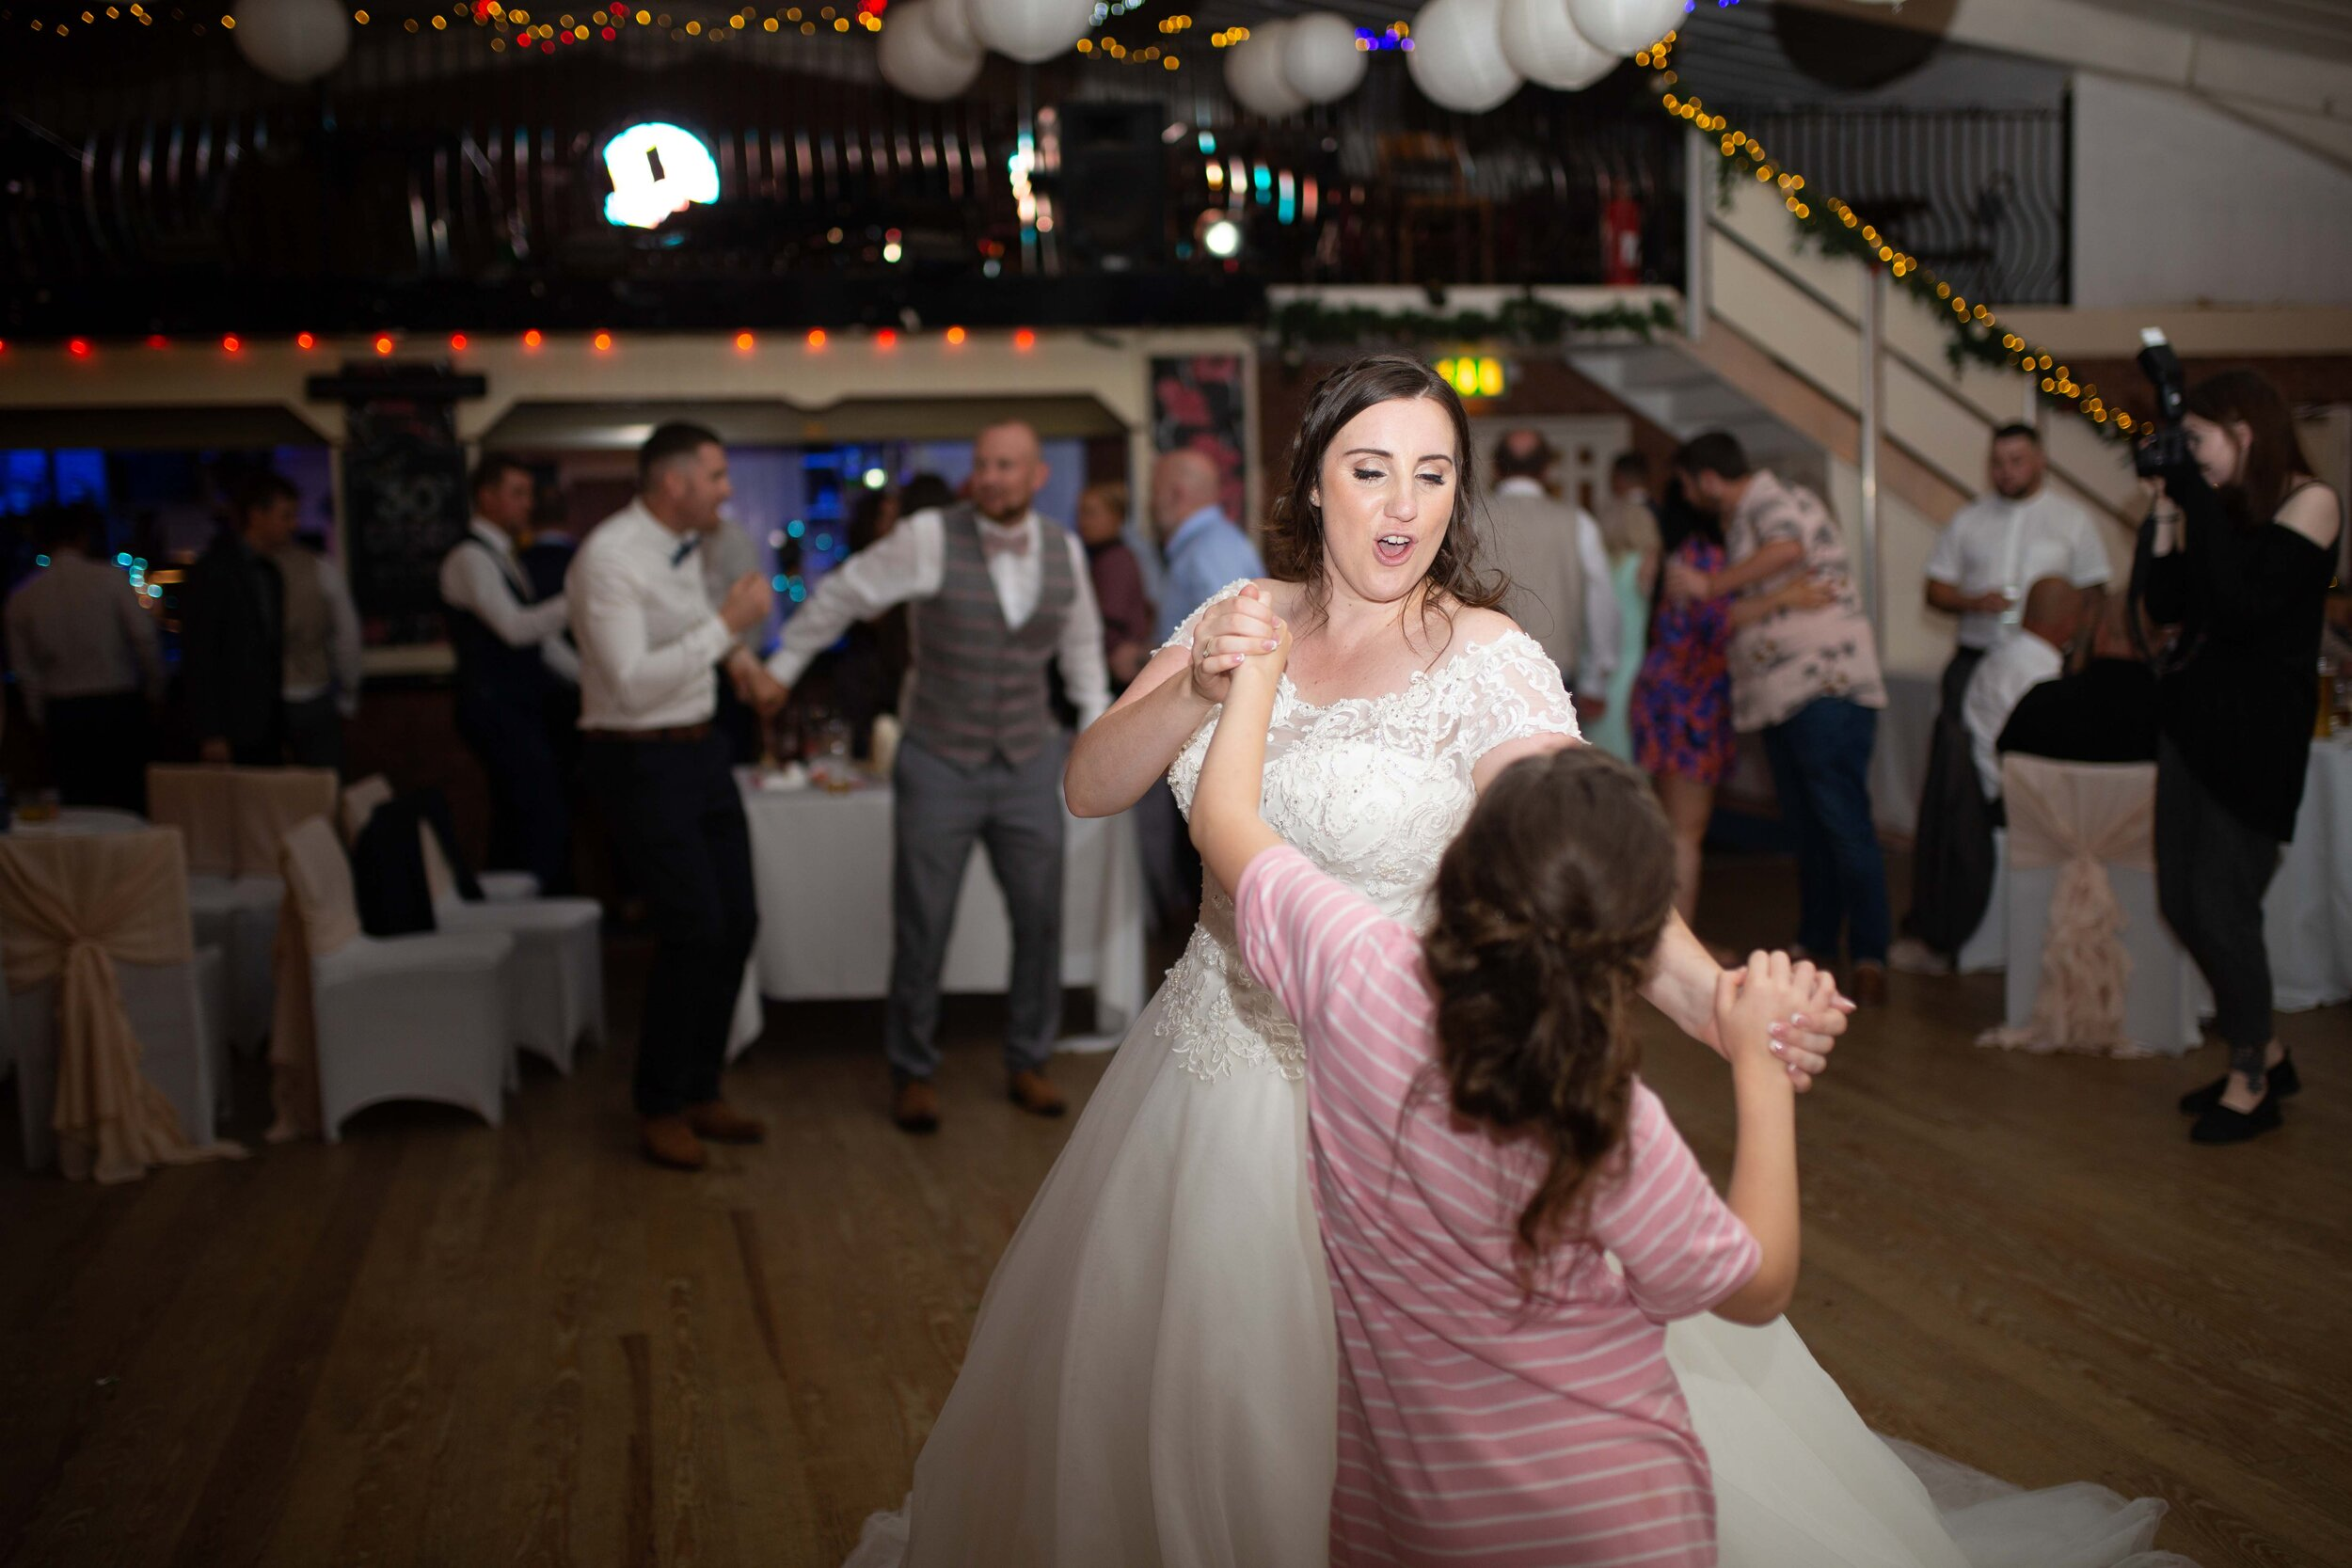 Lea Cooper photography - wedding photography - st Lawrence church dalaston West Midlands Willenhall Wednesday wedding photographer Brookfields club house cannock road - 36.JPG